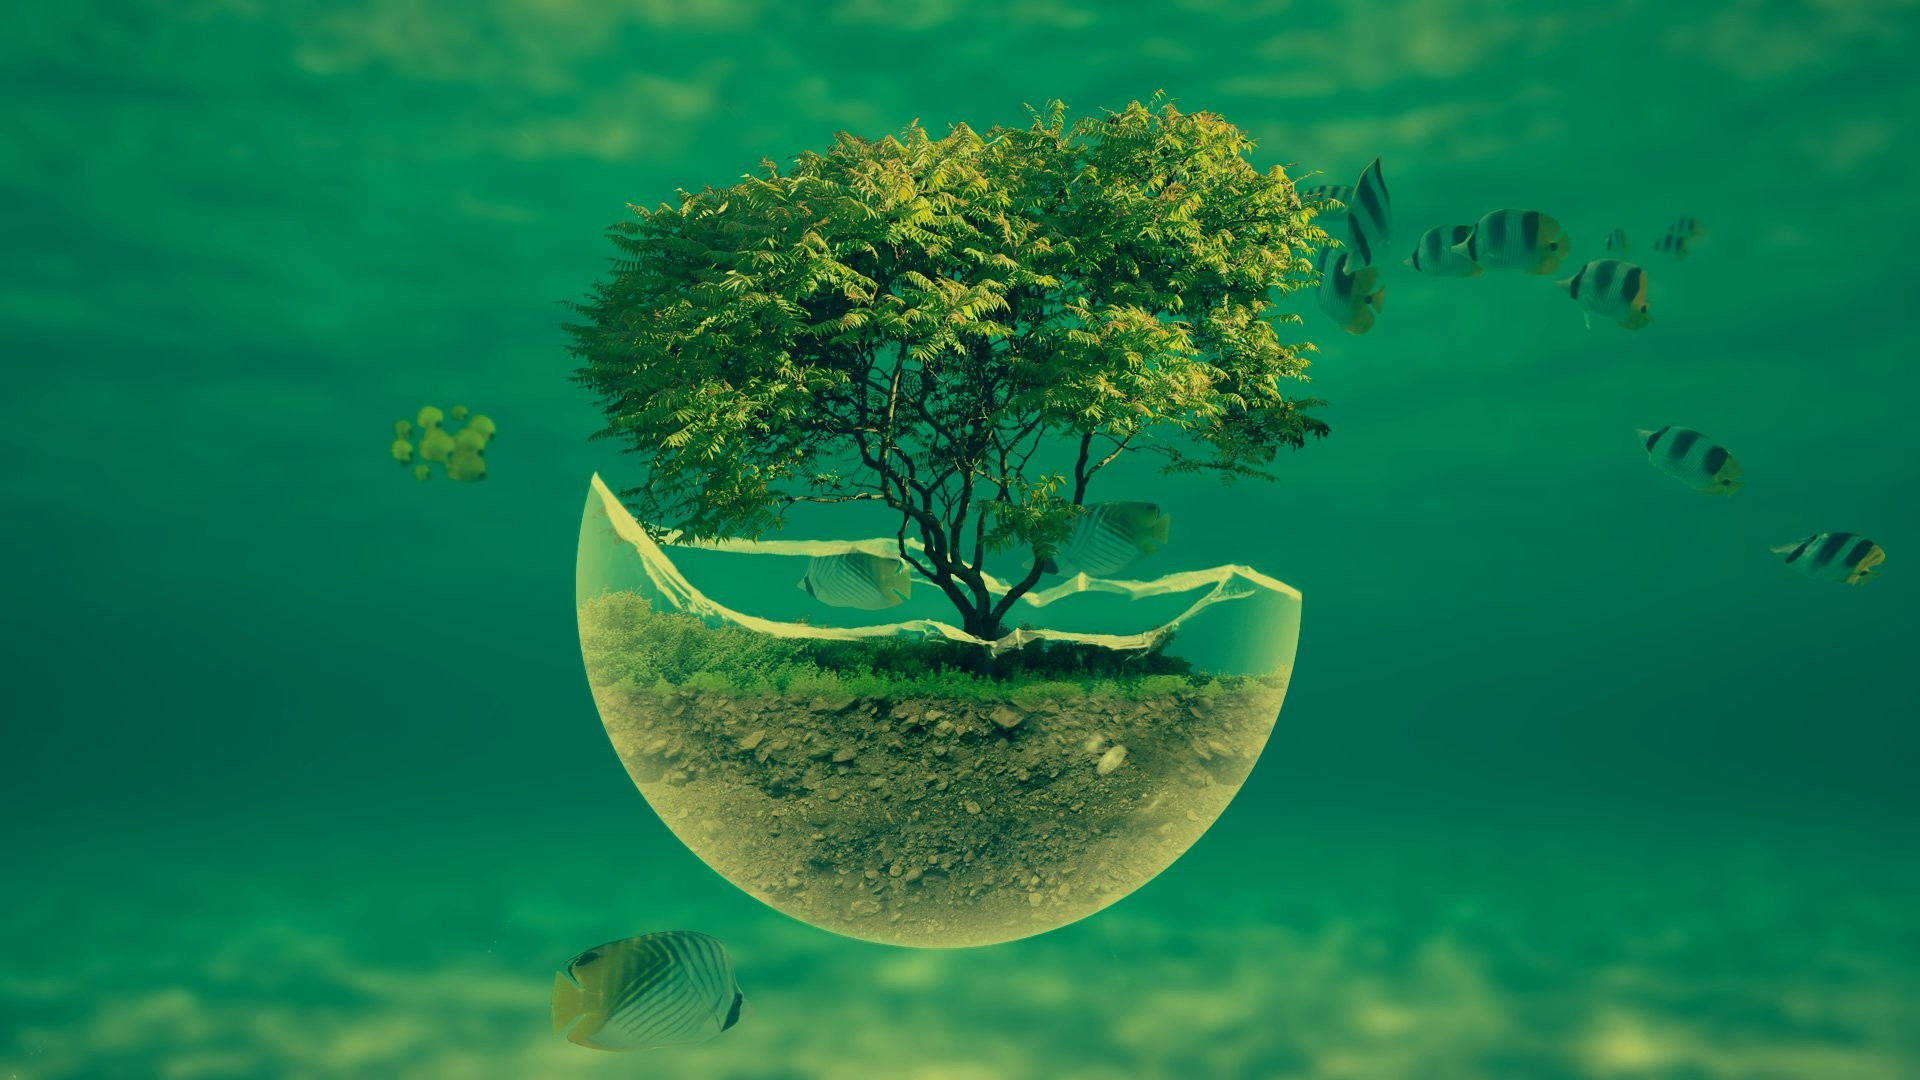 … 1188_3d_abstract 1920×1080-underwater-tree-widescreen-hd-abstract -desktop-wallpaper …